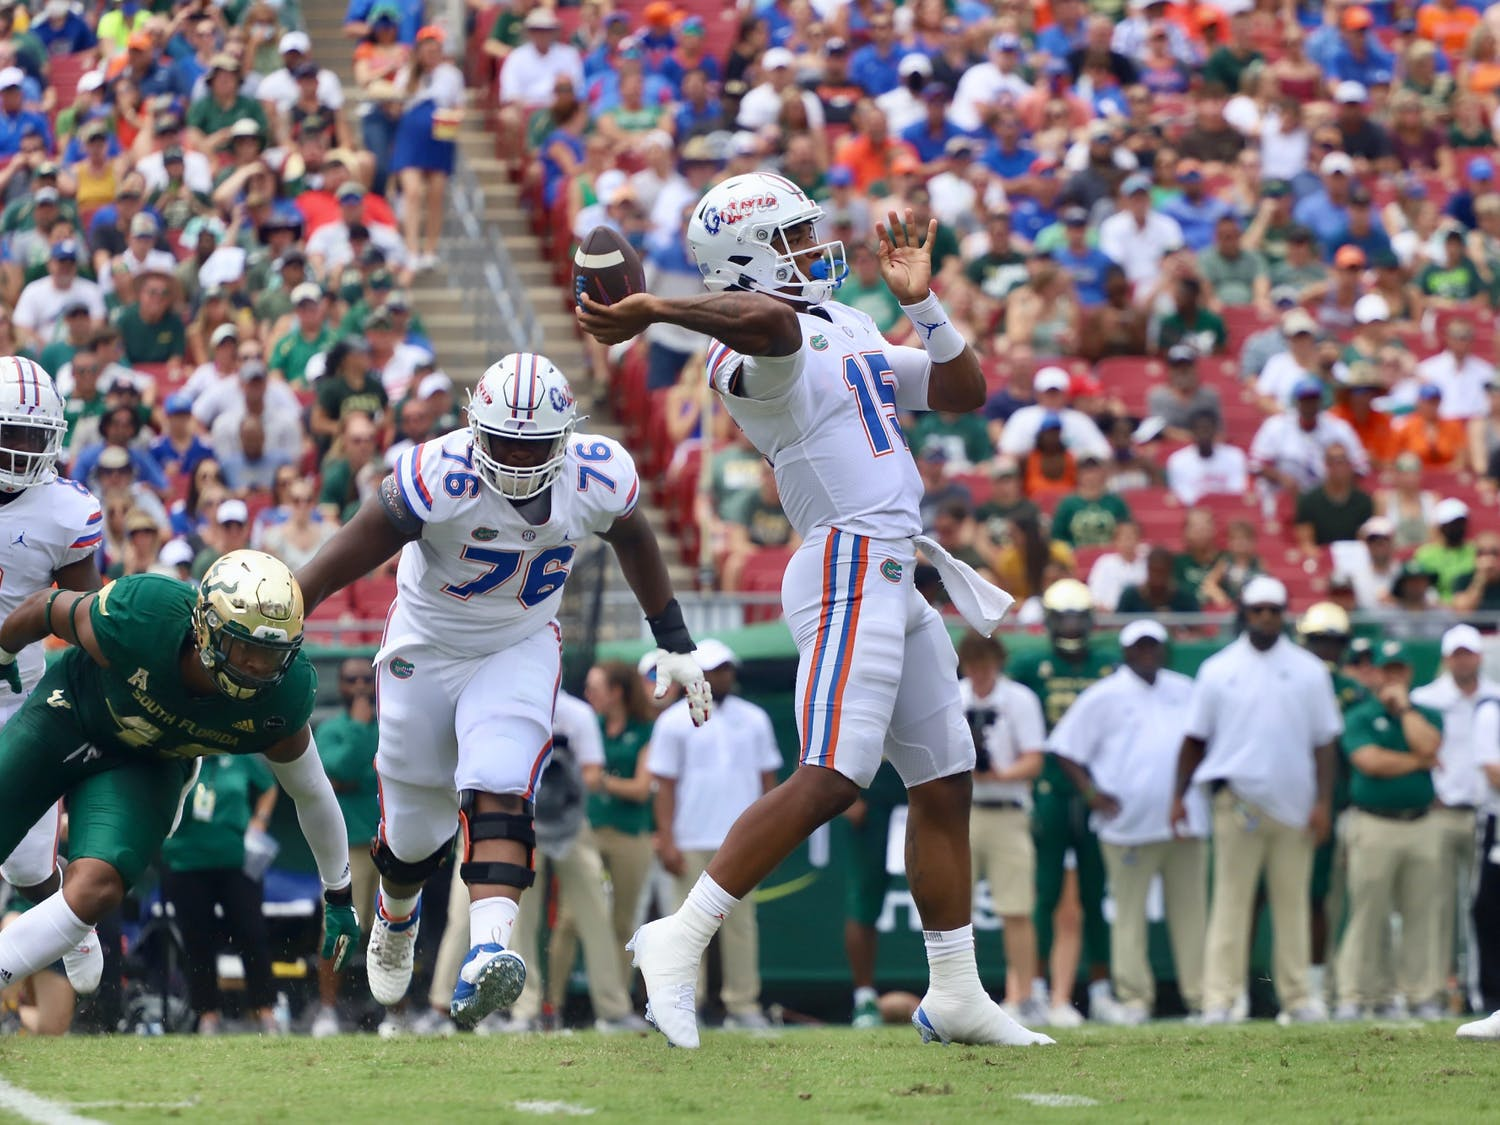 Florida's Anthony Richardson (pictured with ball) sets to throw against South Florida on Sept. 11, 2021.